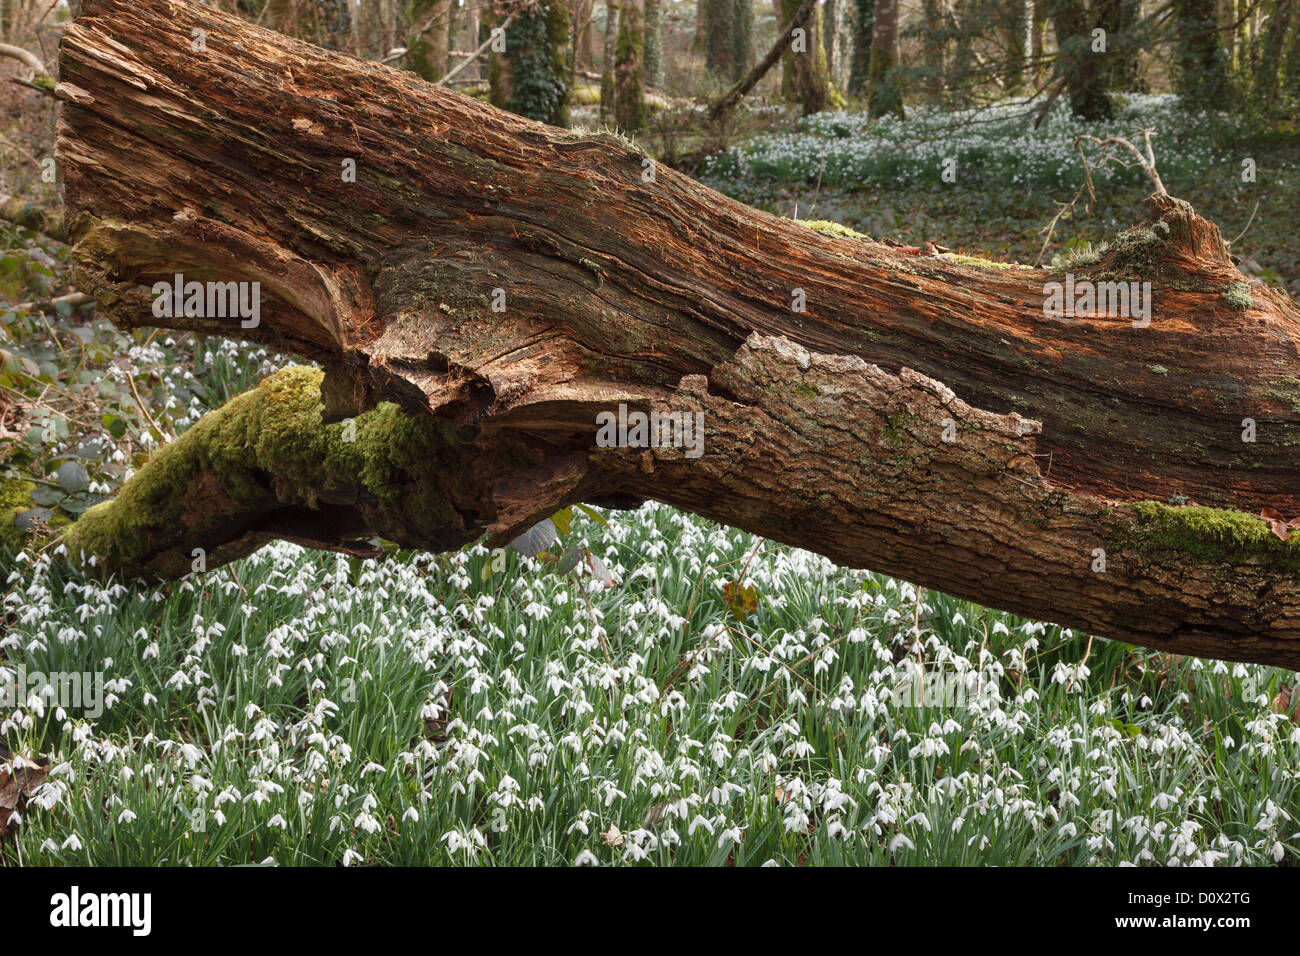 Woodland scene with wild Snowdrops (Galanthus nivalis) growing by a rotten fallen tree trunk in winter in Dwyfor - Stock Image